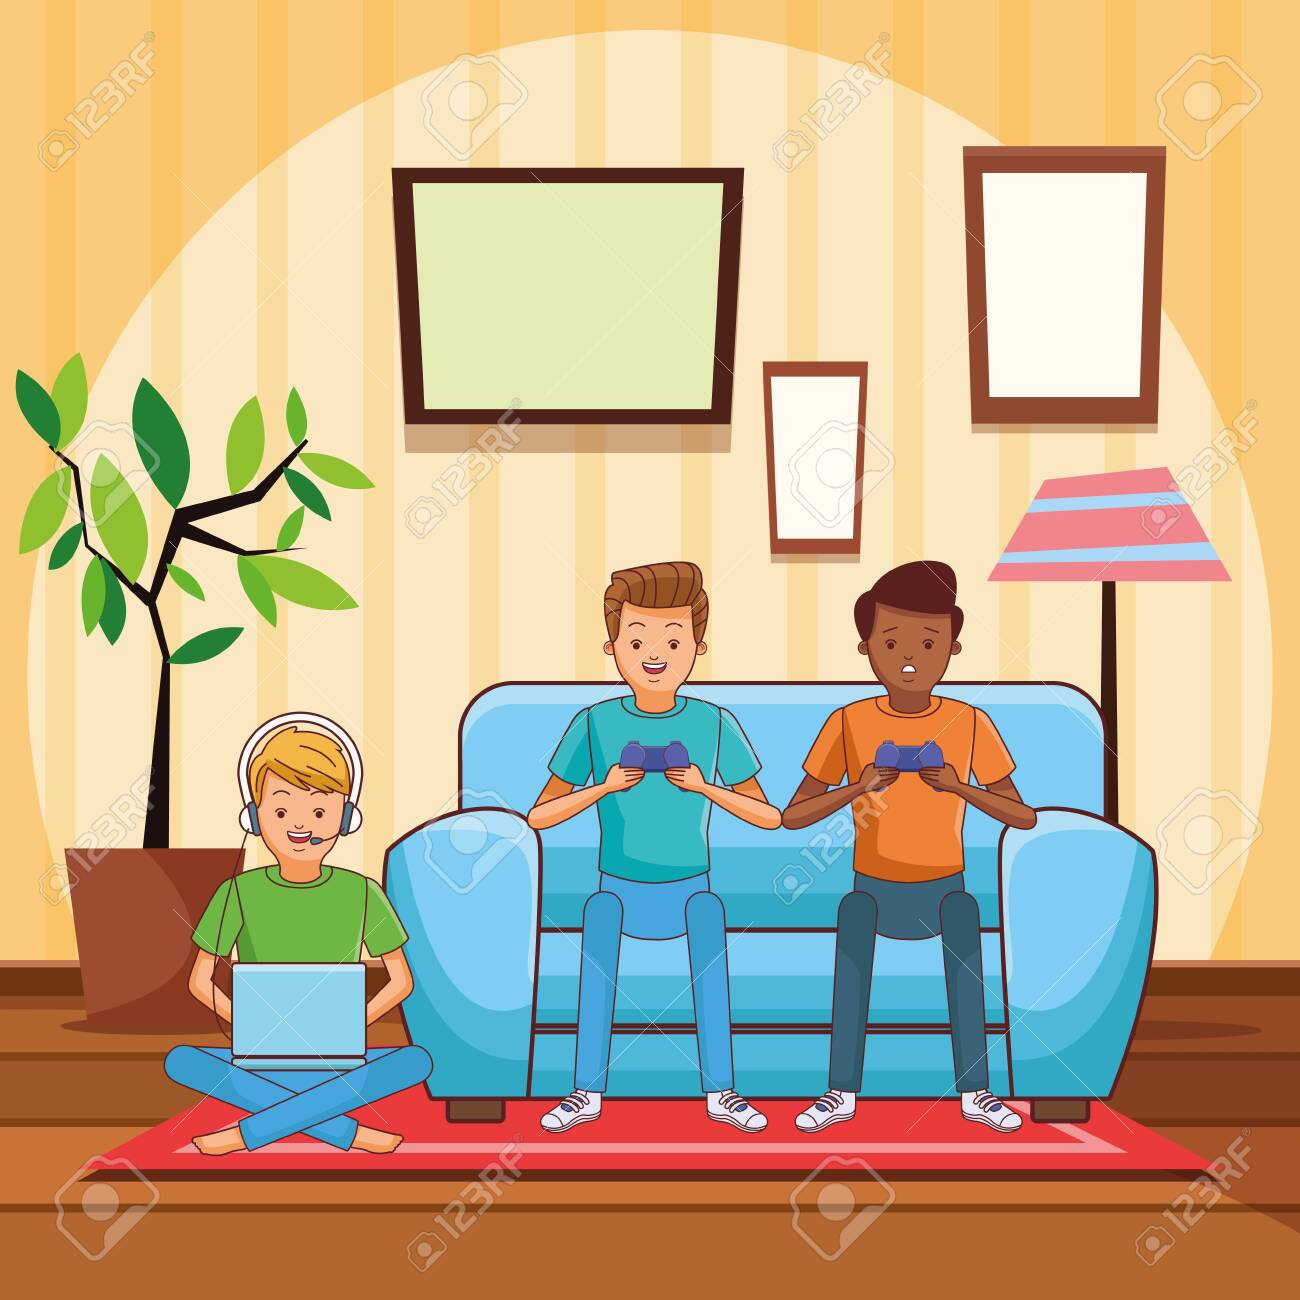 Video Game Scene Young Men Friends Playing On Couch Cartoon